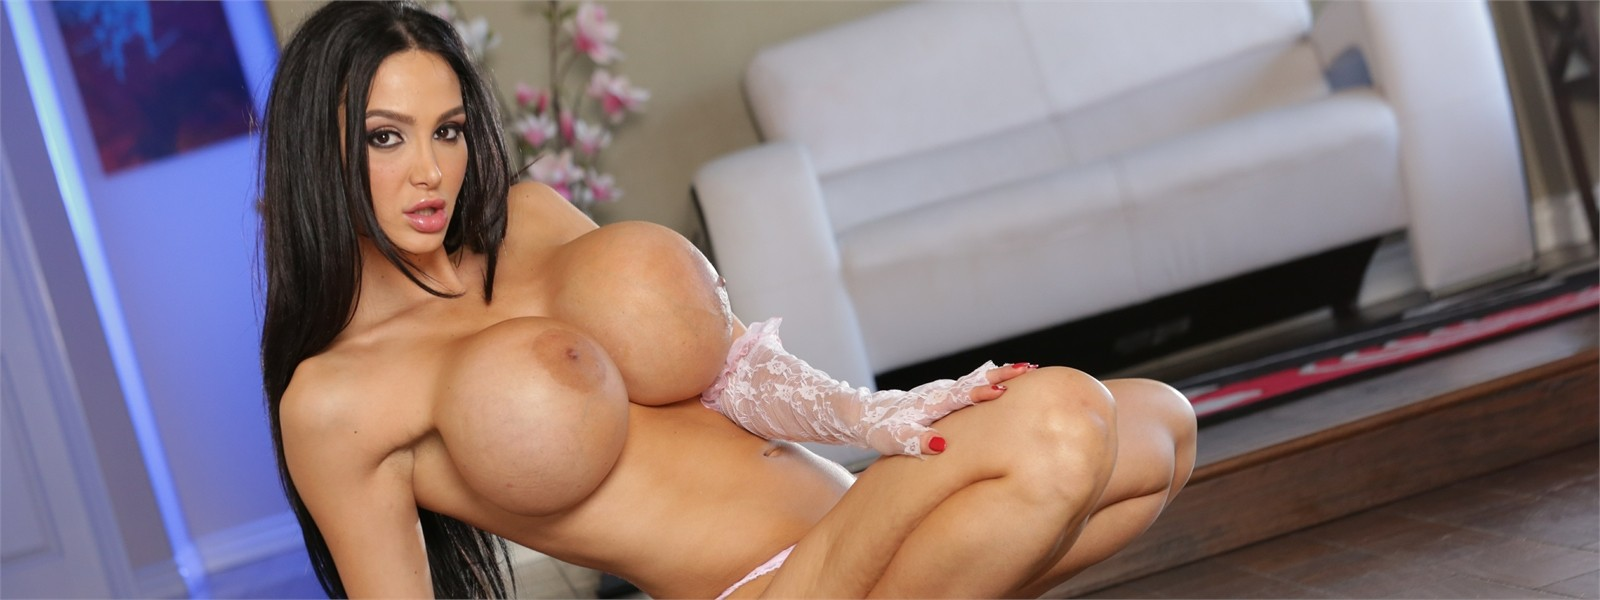 amy anderssen adult dvd rental @ adult dvd empire